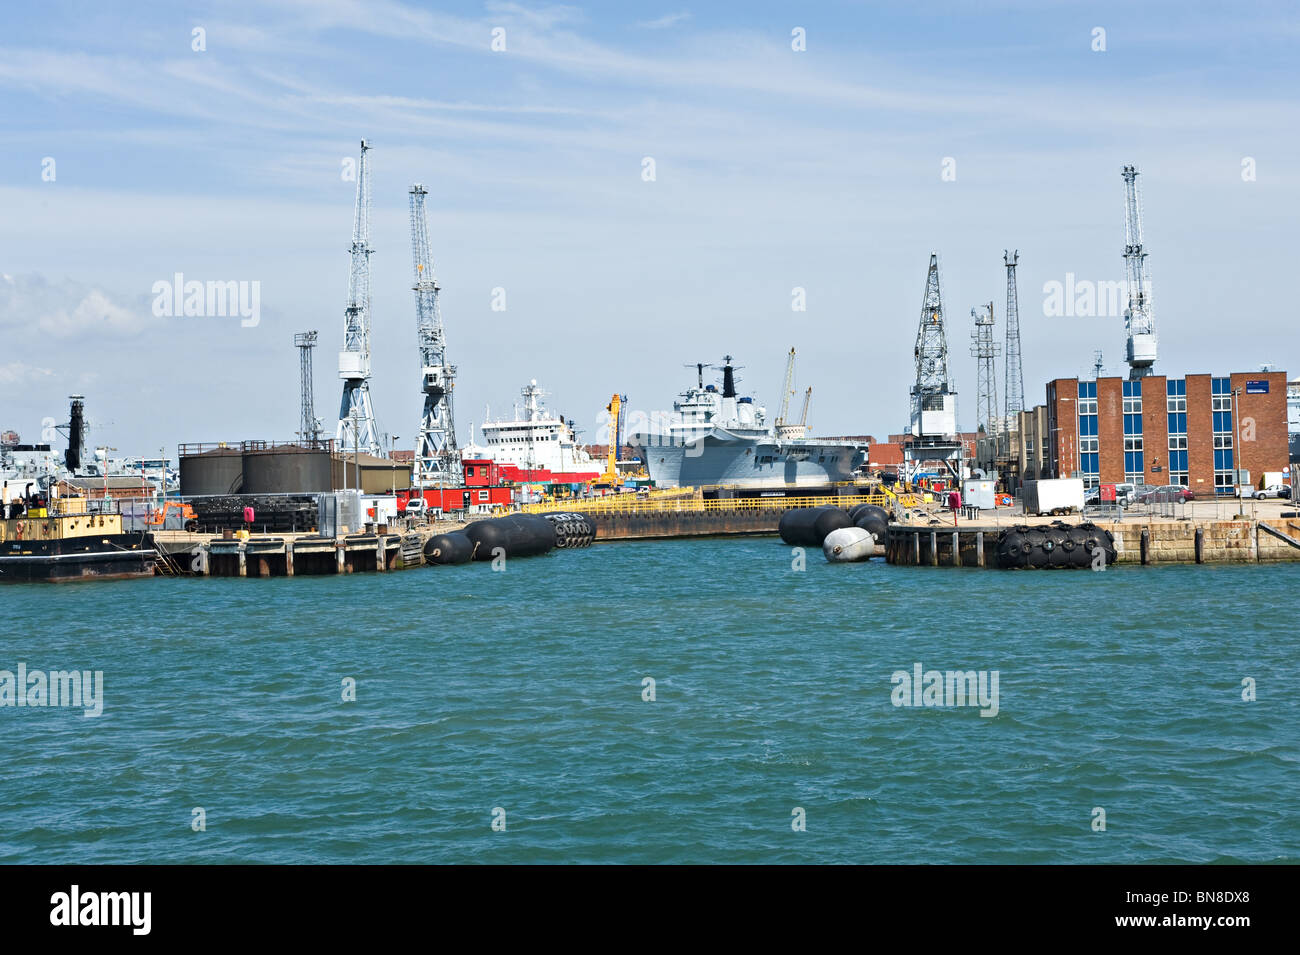 British Royal Navy Ships HMS Endurance A171 and HMS Invincible R05 Docked at Portsmouth Naval Dockyard England United - Stock Image